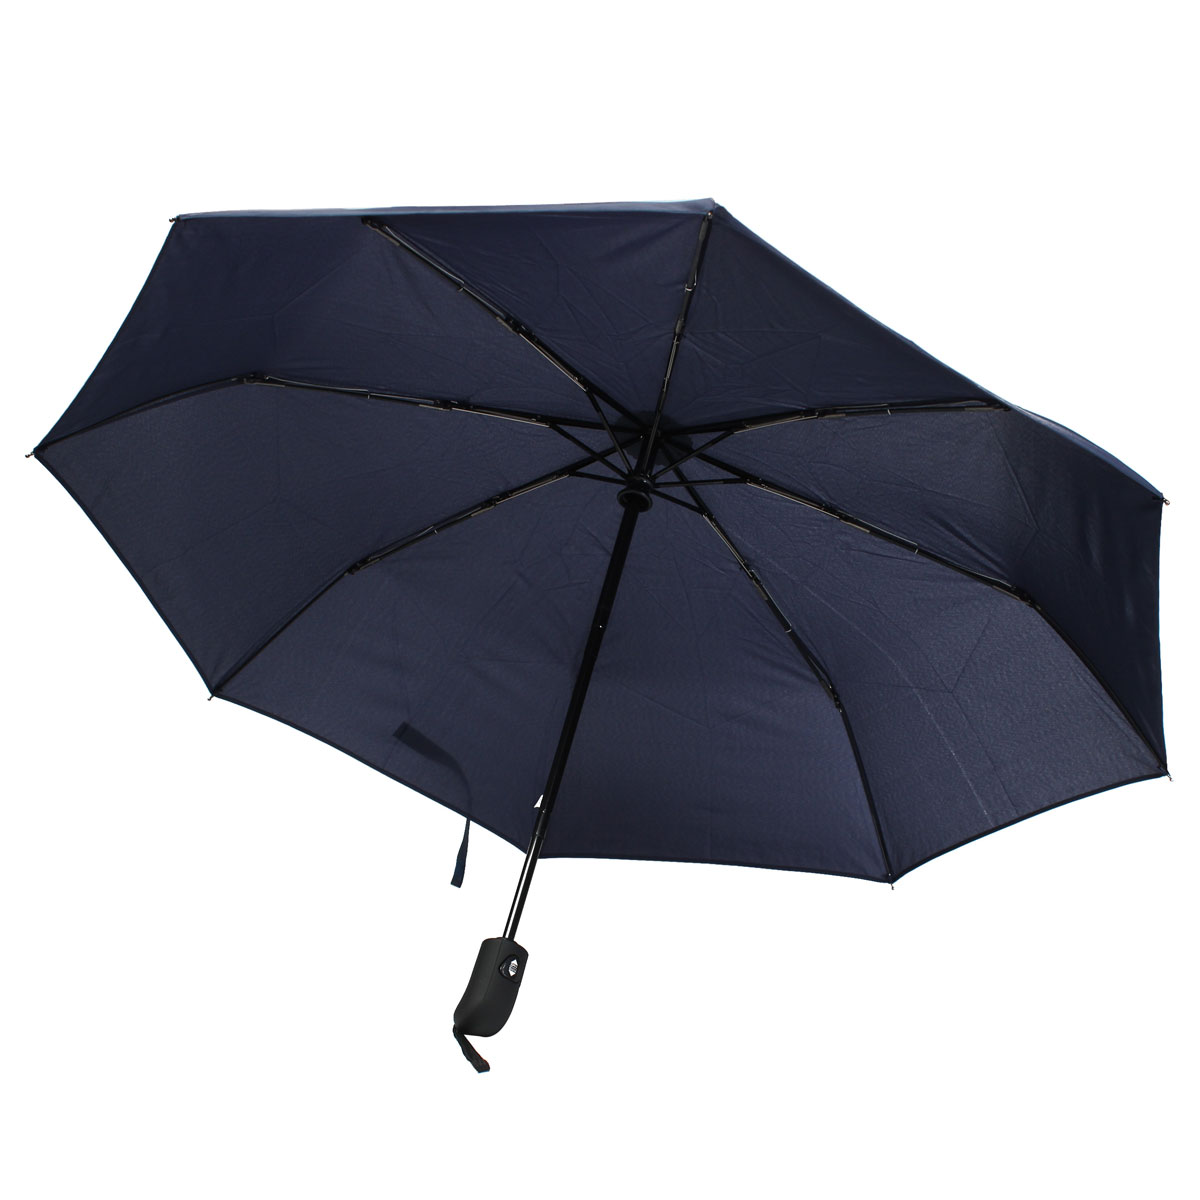 Auto Open Close Parasol Folding Rain Umbrella Telescopic Sun Strong Windproof